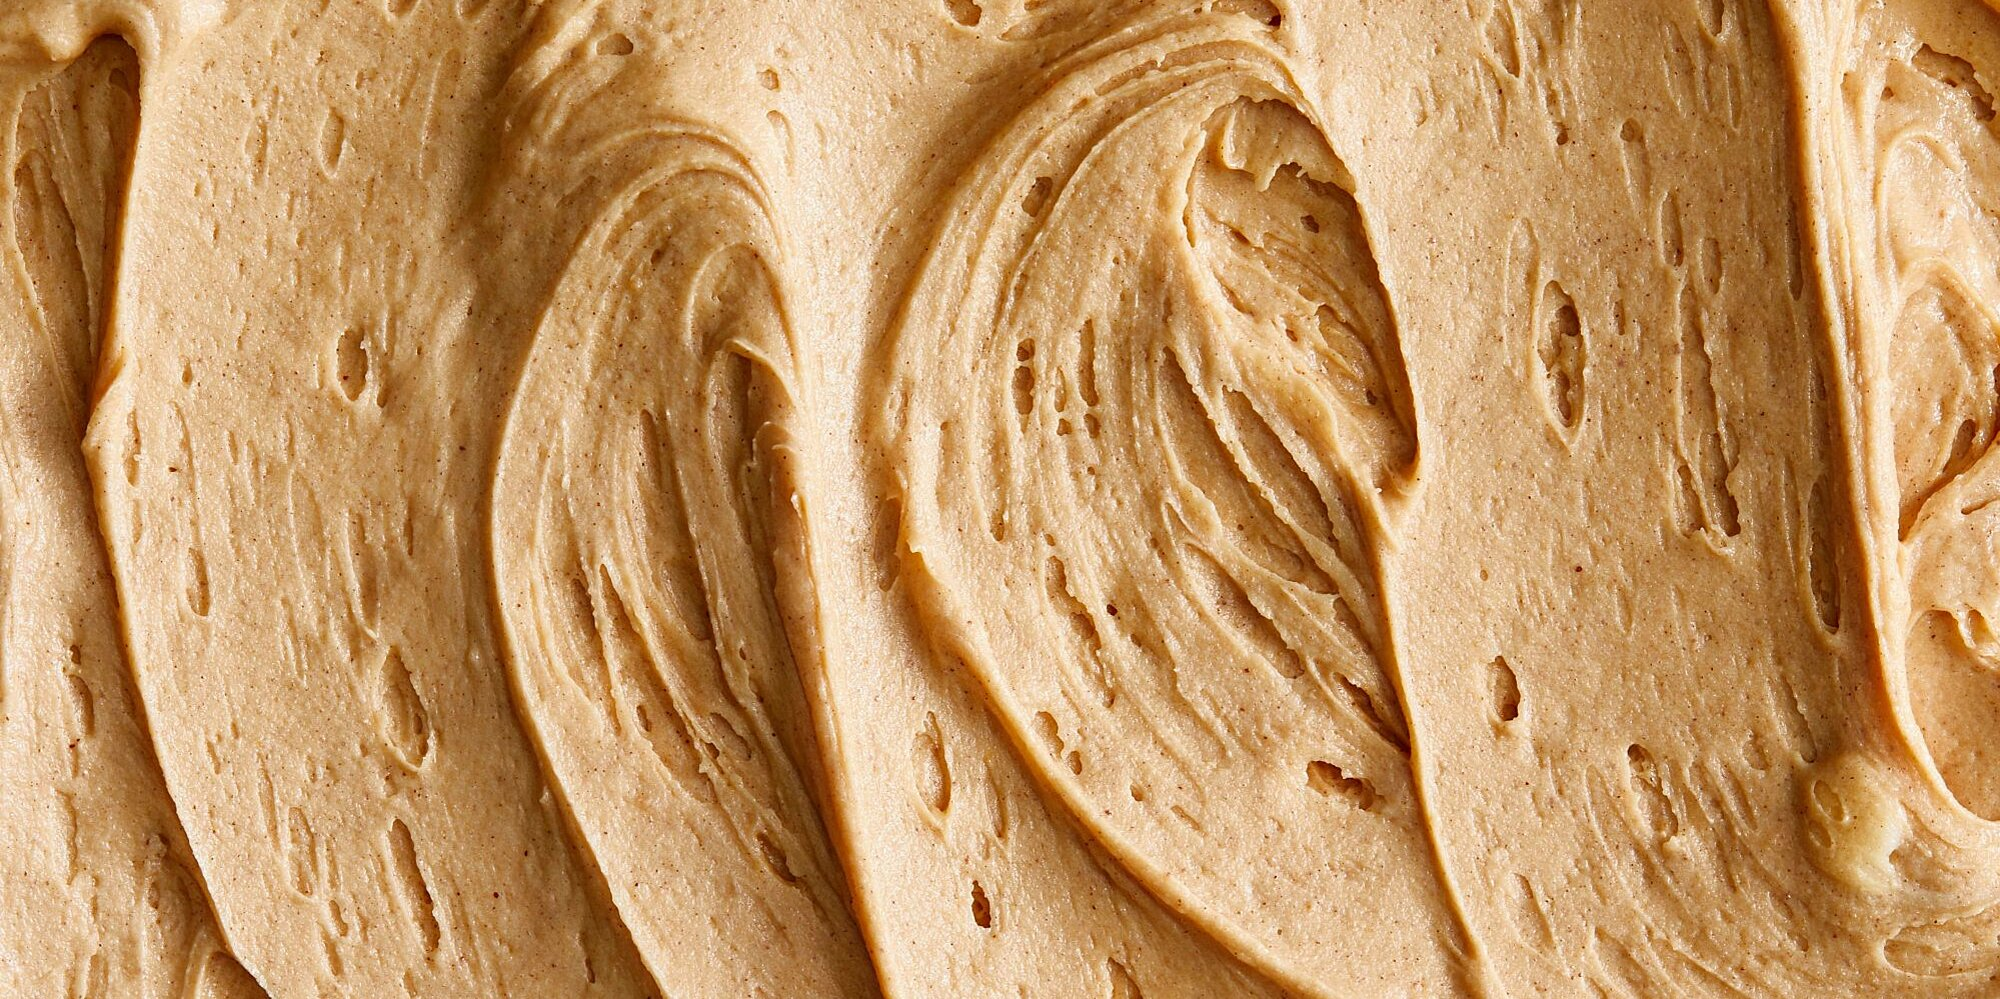 Frosting Versus Icing: What's the Difference?